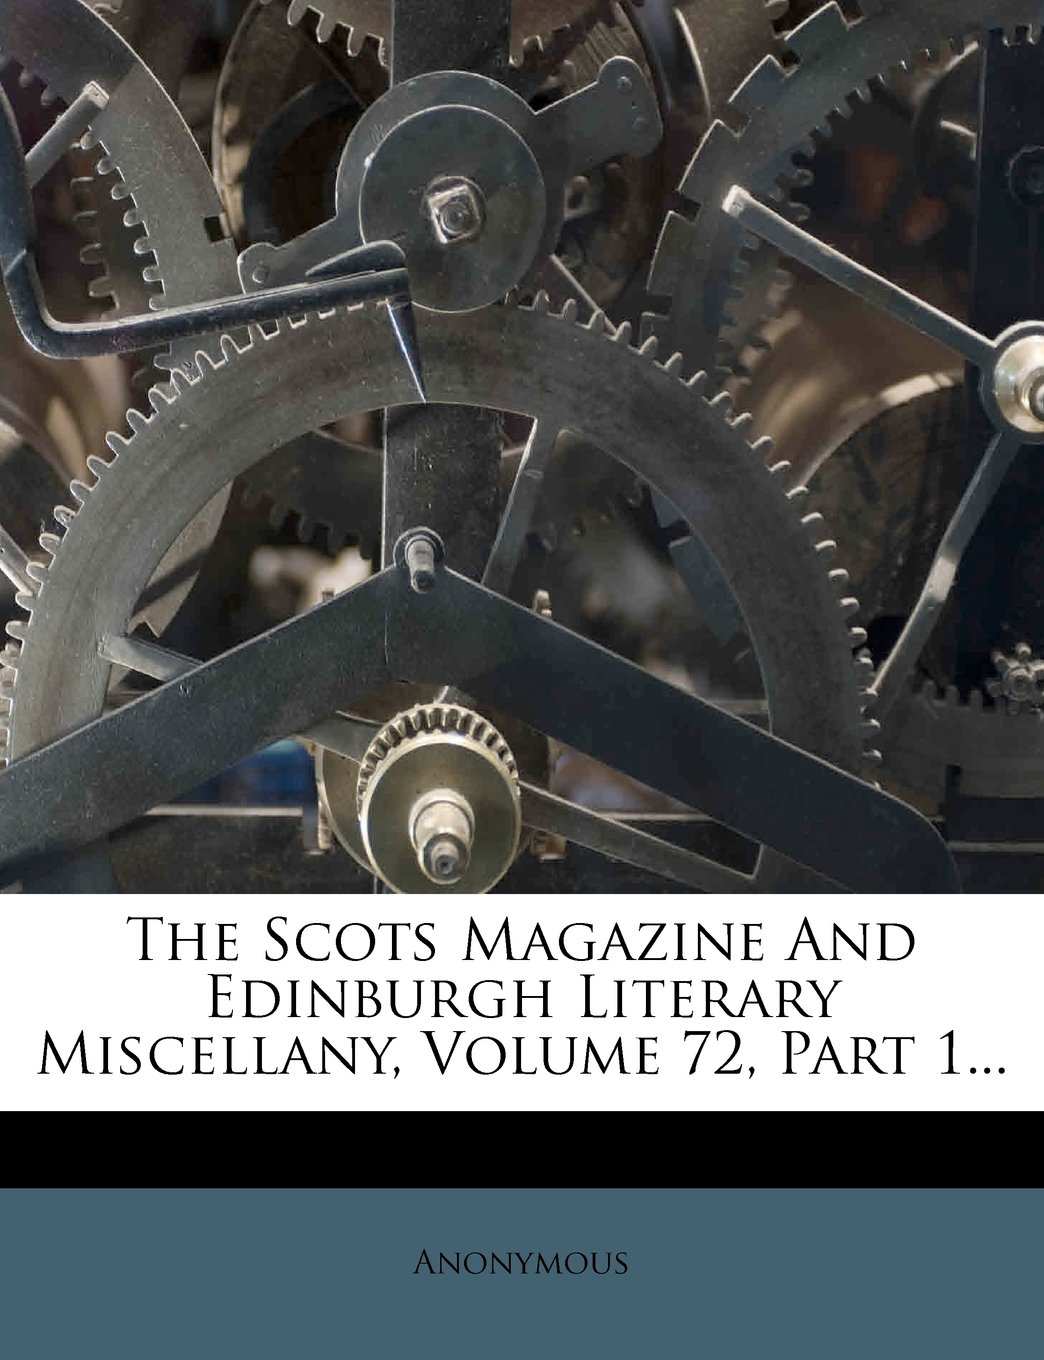 The Scots Magazine And Edinburgh Literary Miscellany, Volume 72, Part 1... pdf